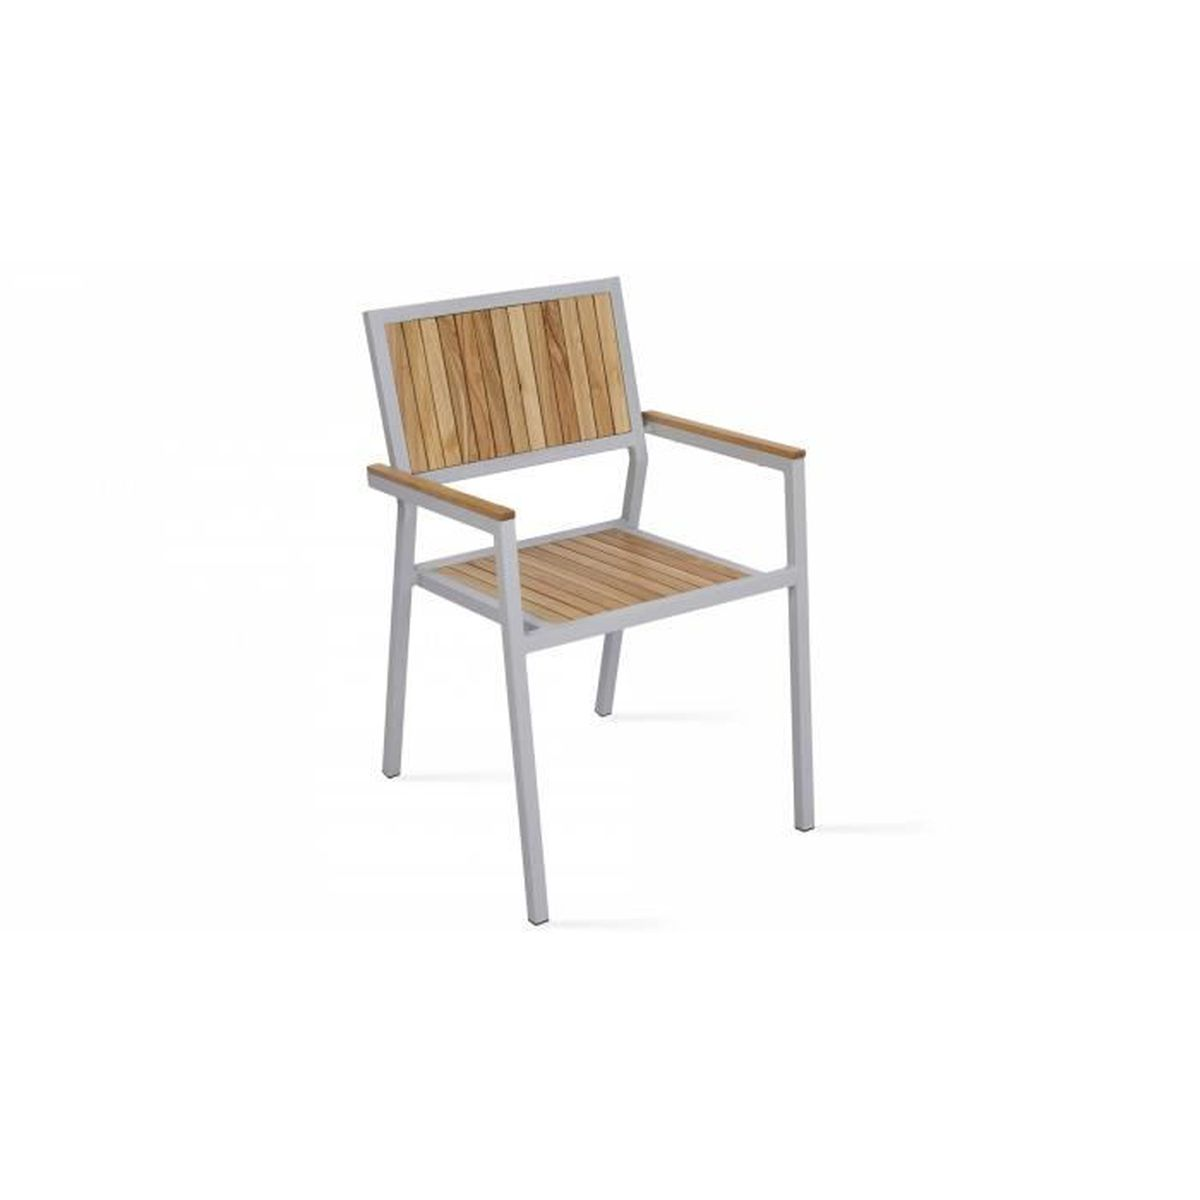 Emejing table de jardin bois et aluminium images amazing for Chaise de table en bois